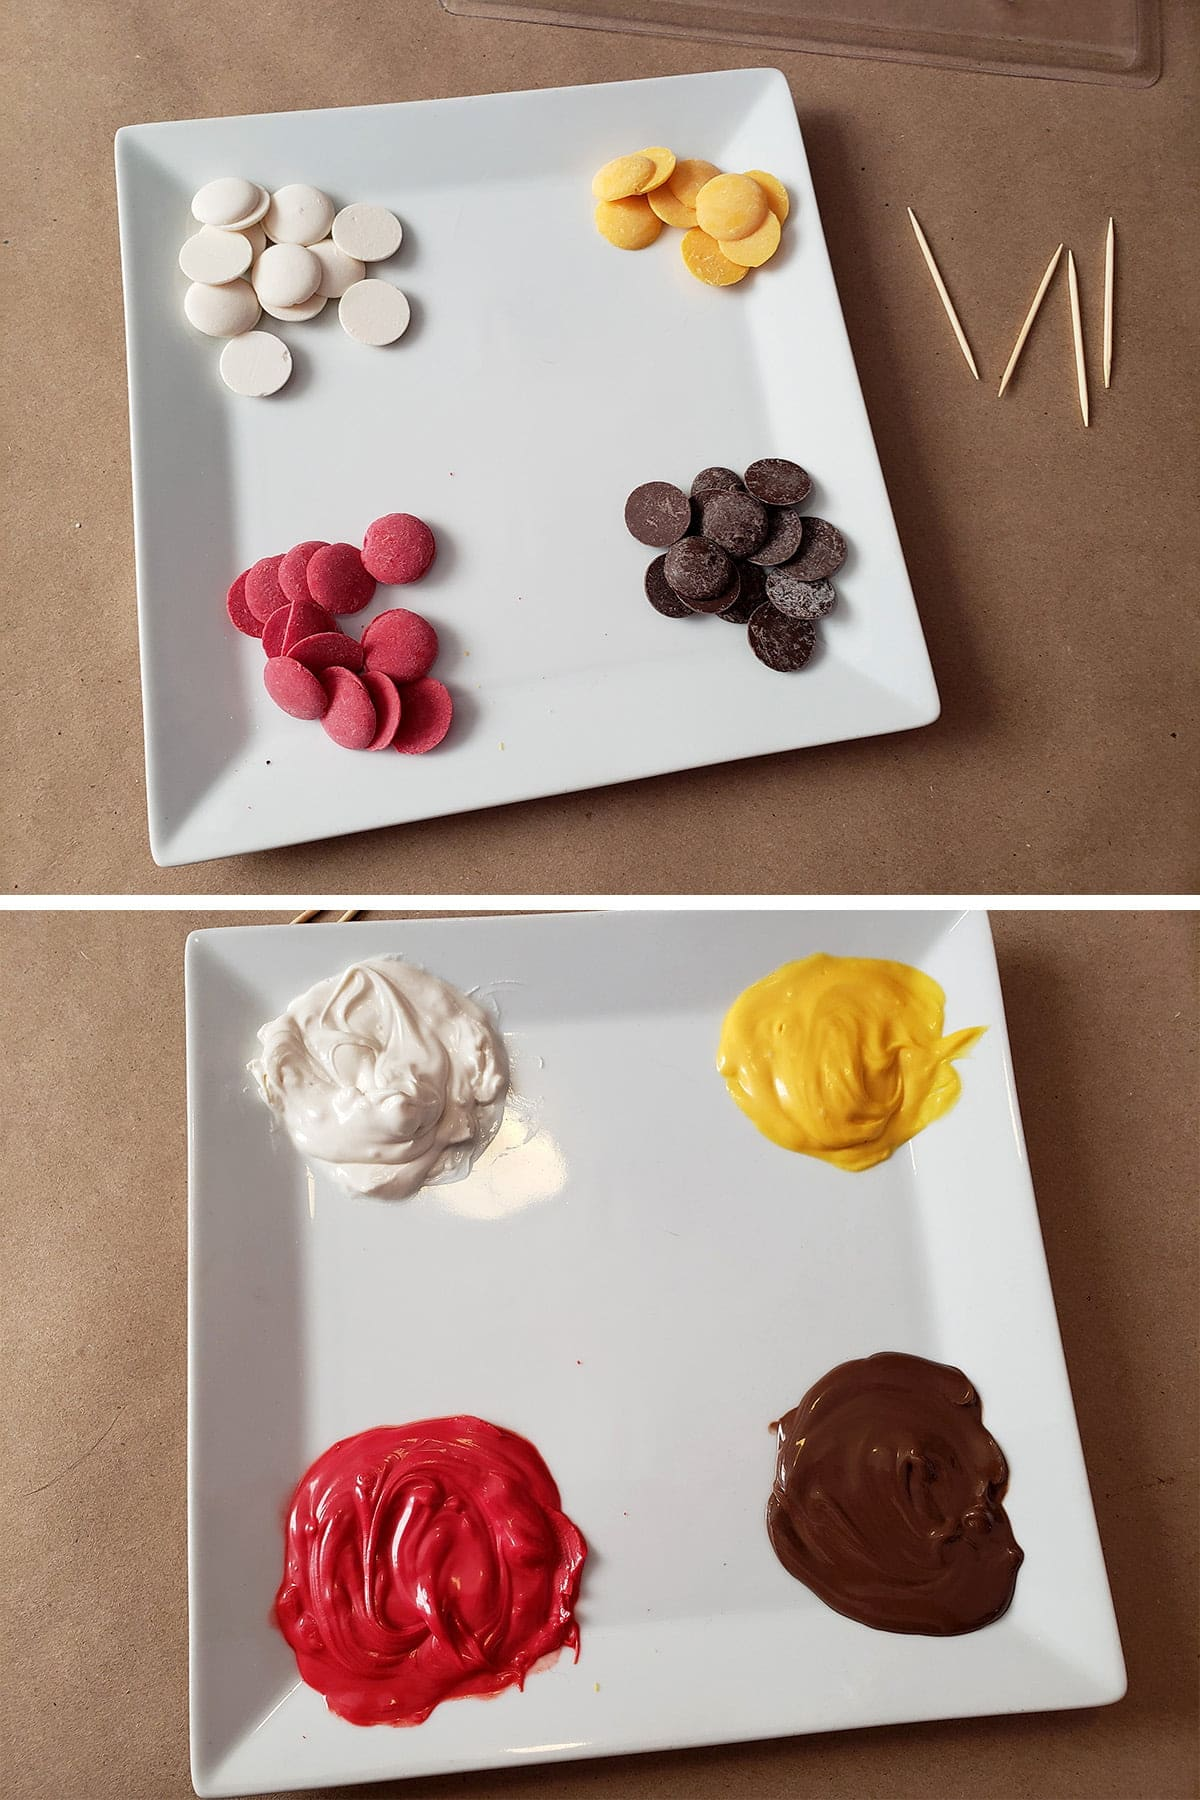 A two compilation image. The top photo shows small piles o candy melts on a plate - one each of red, white, brown, and yellow. The bottom image shows the same plate, with the candy melted.